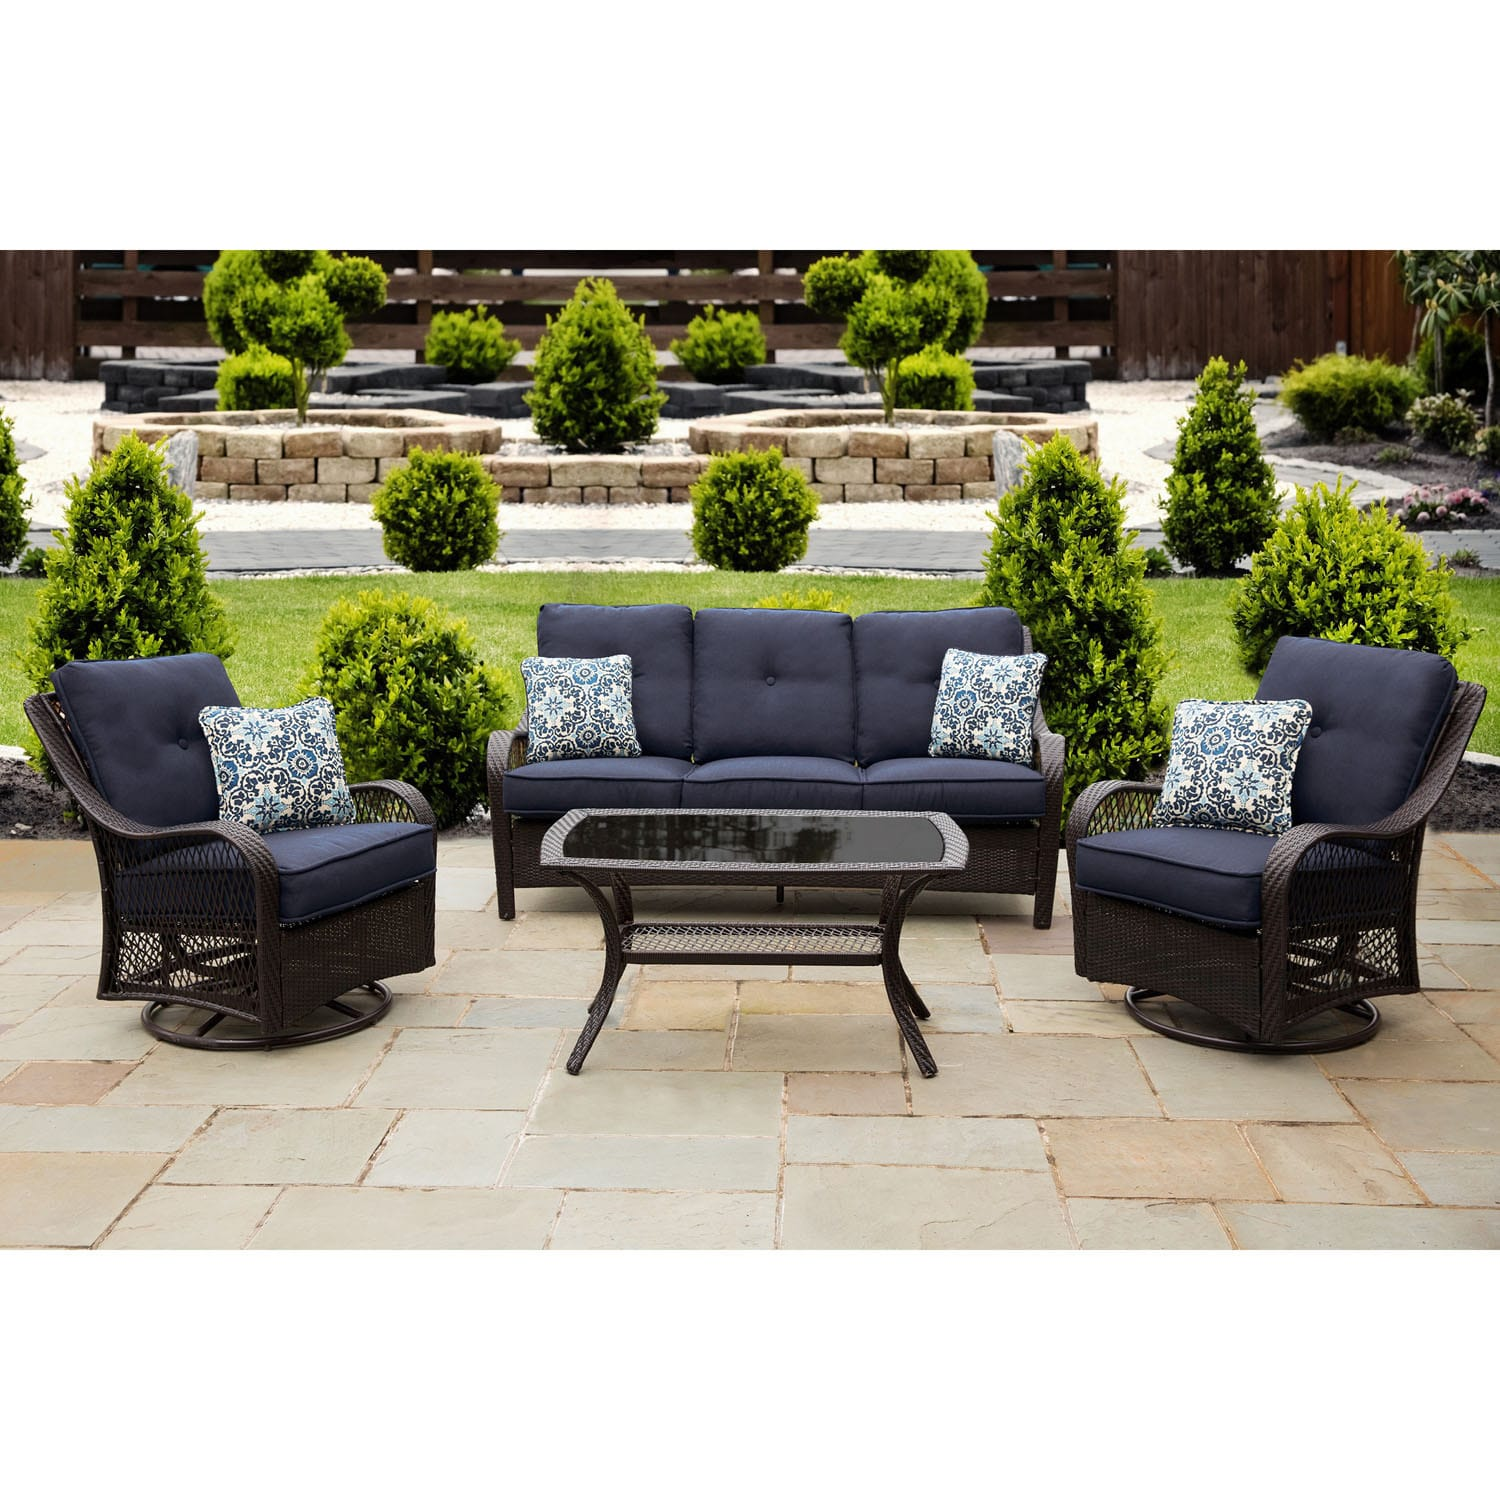 Hanover Orleans Blue Wood Outdoor Four Piece All Weather Patio Set